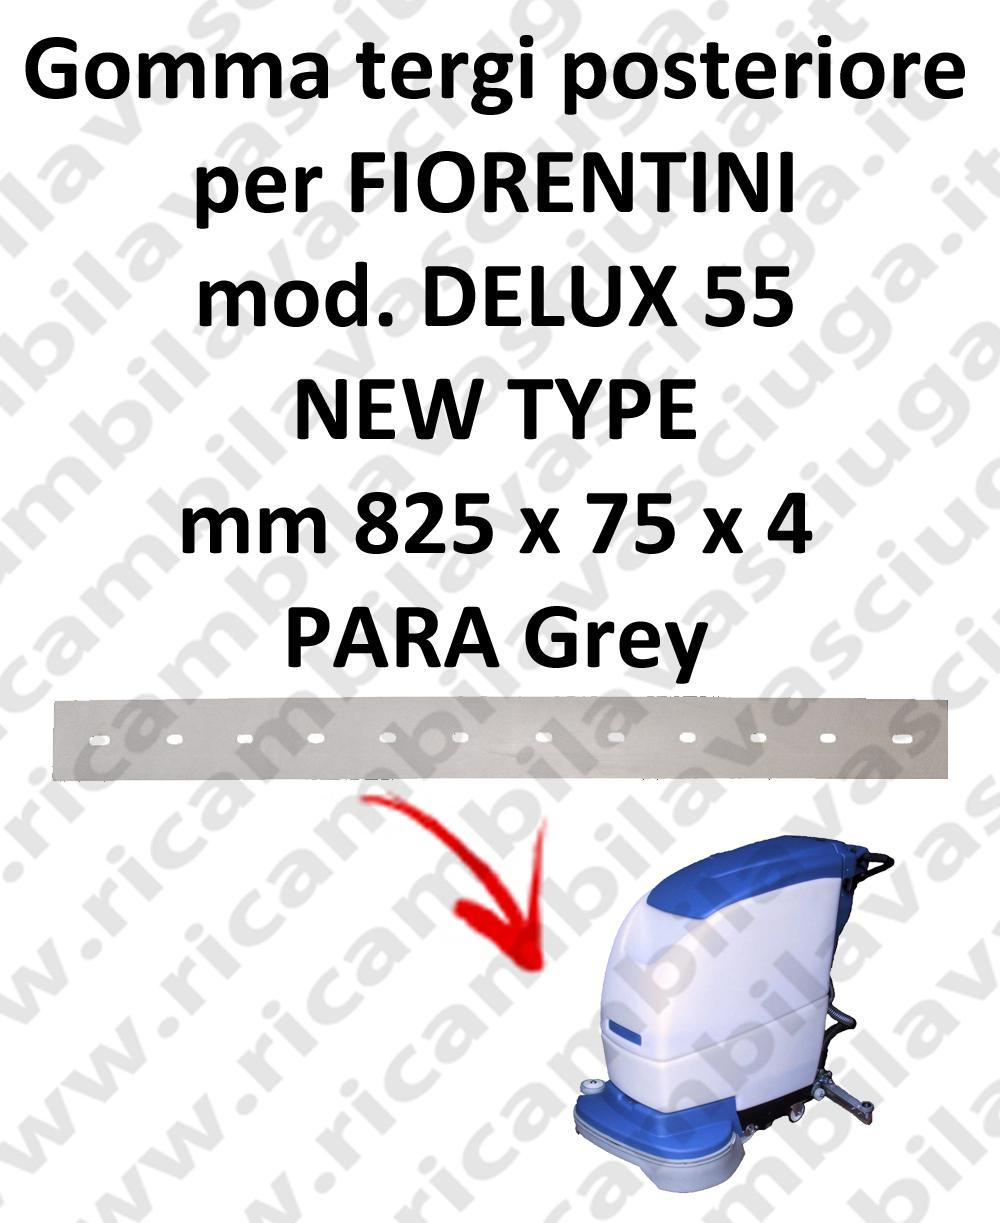 DELUX 55 new type Back Squeegee rubberfor FIORENTINI squeegee